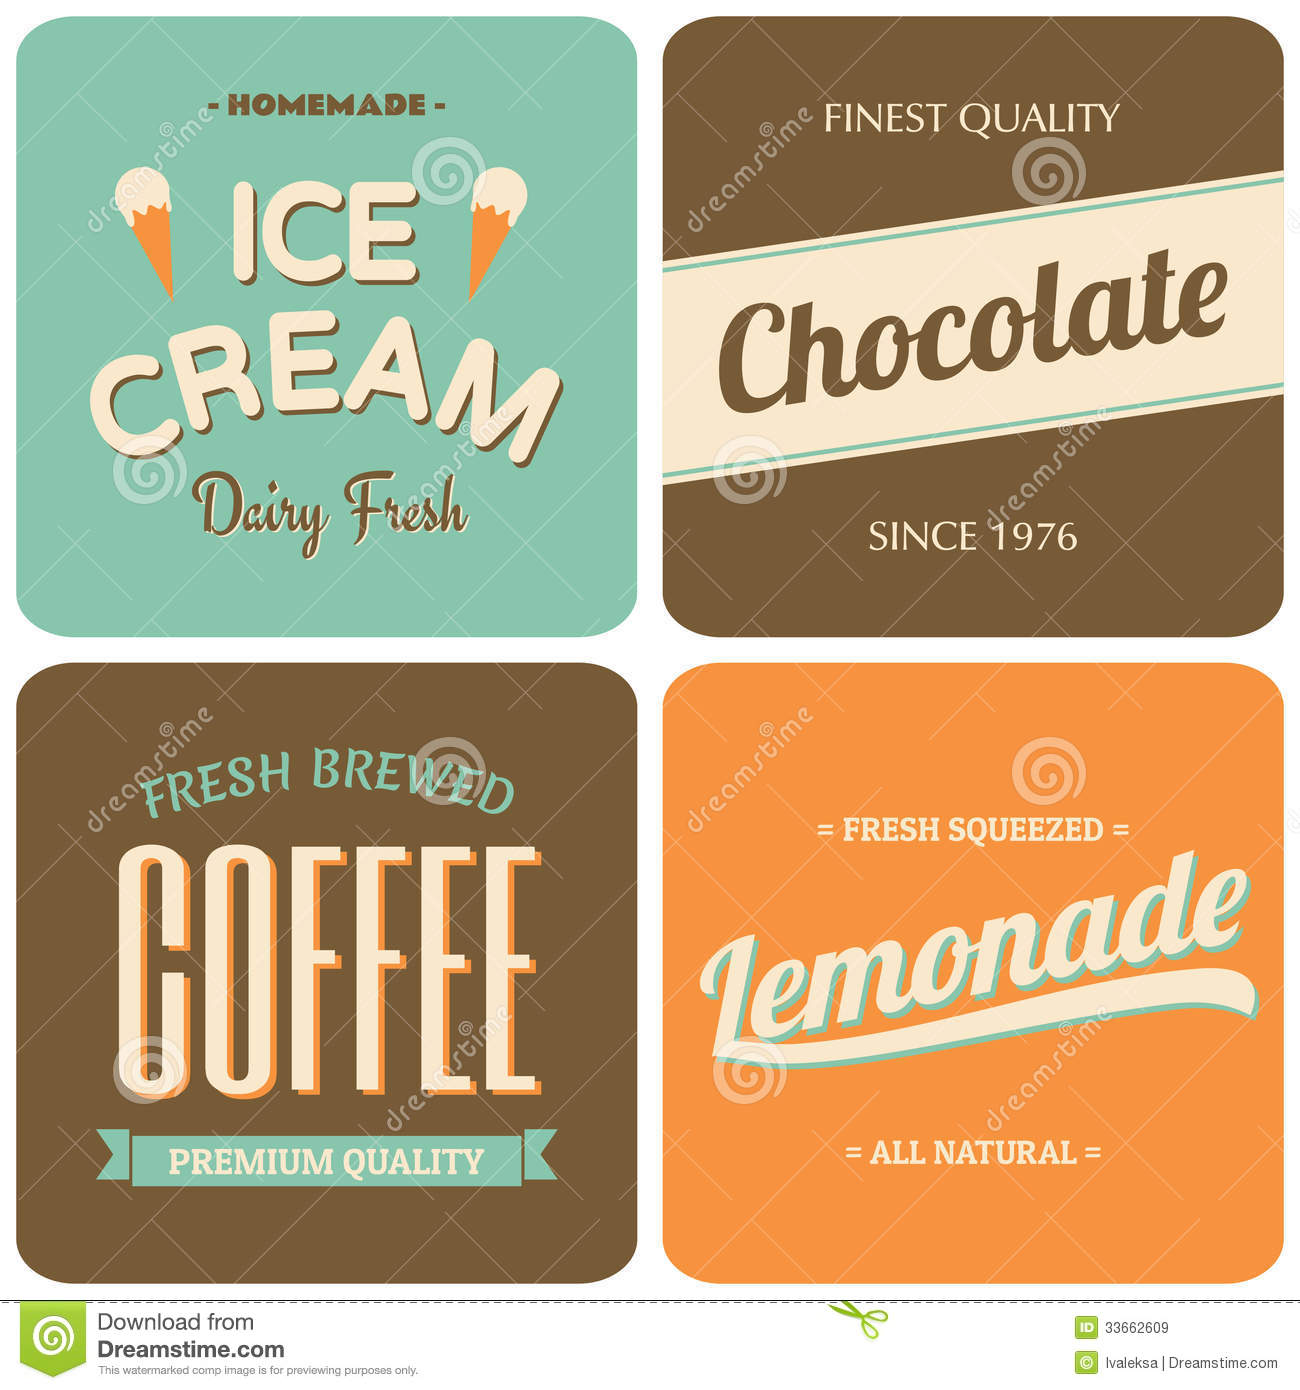 ... designs - packaging for coffee, ice cream, chocolate and lemonade